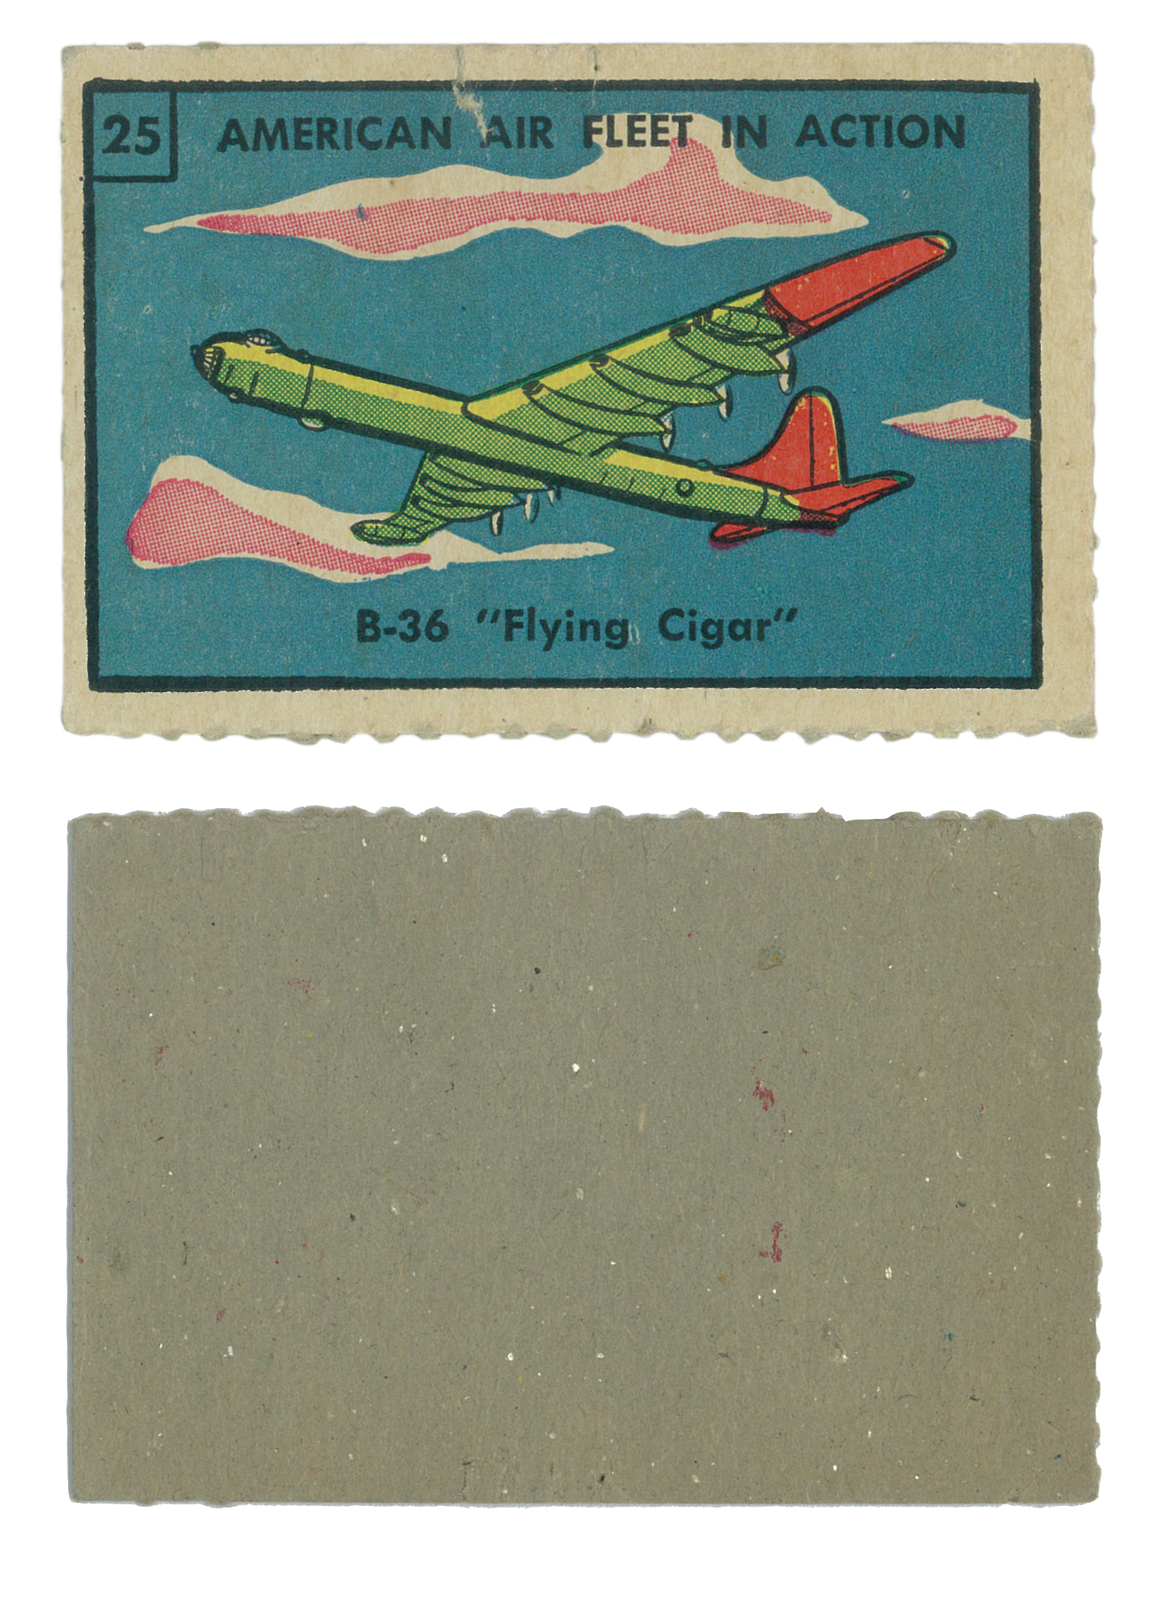 "B-36 ""Flying Cigar"" #25  Series: American Air Fleet in Action Card Dimensions: 3 x 2 inches USA - 1950/60's"